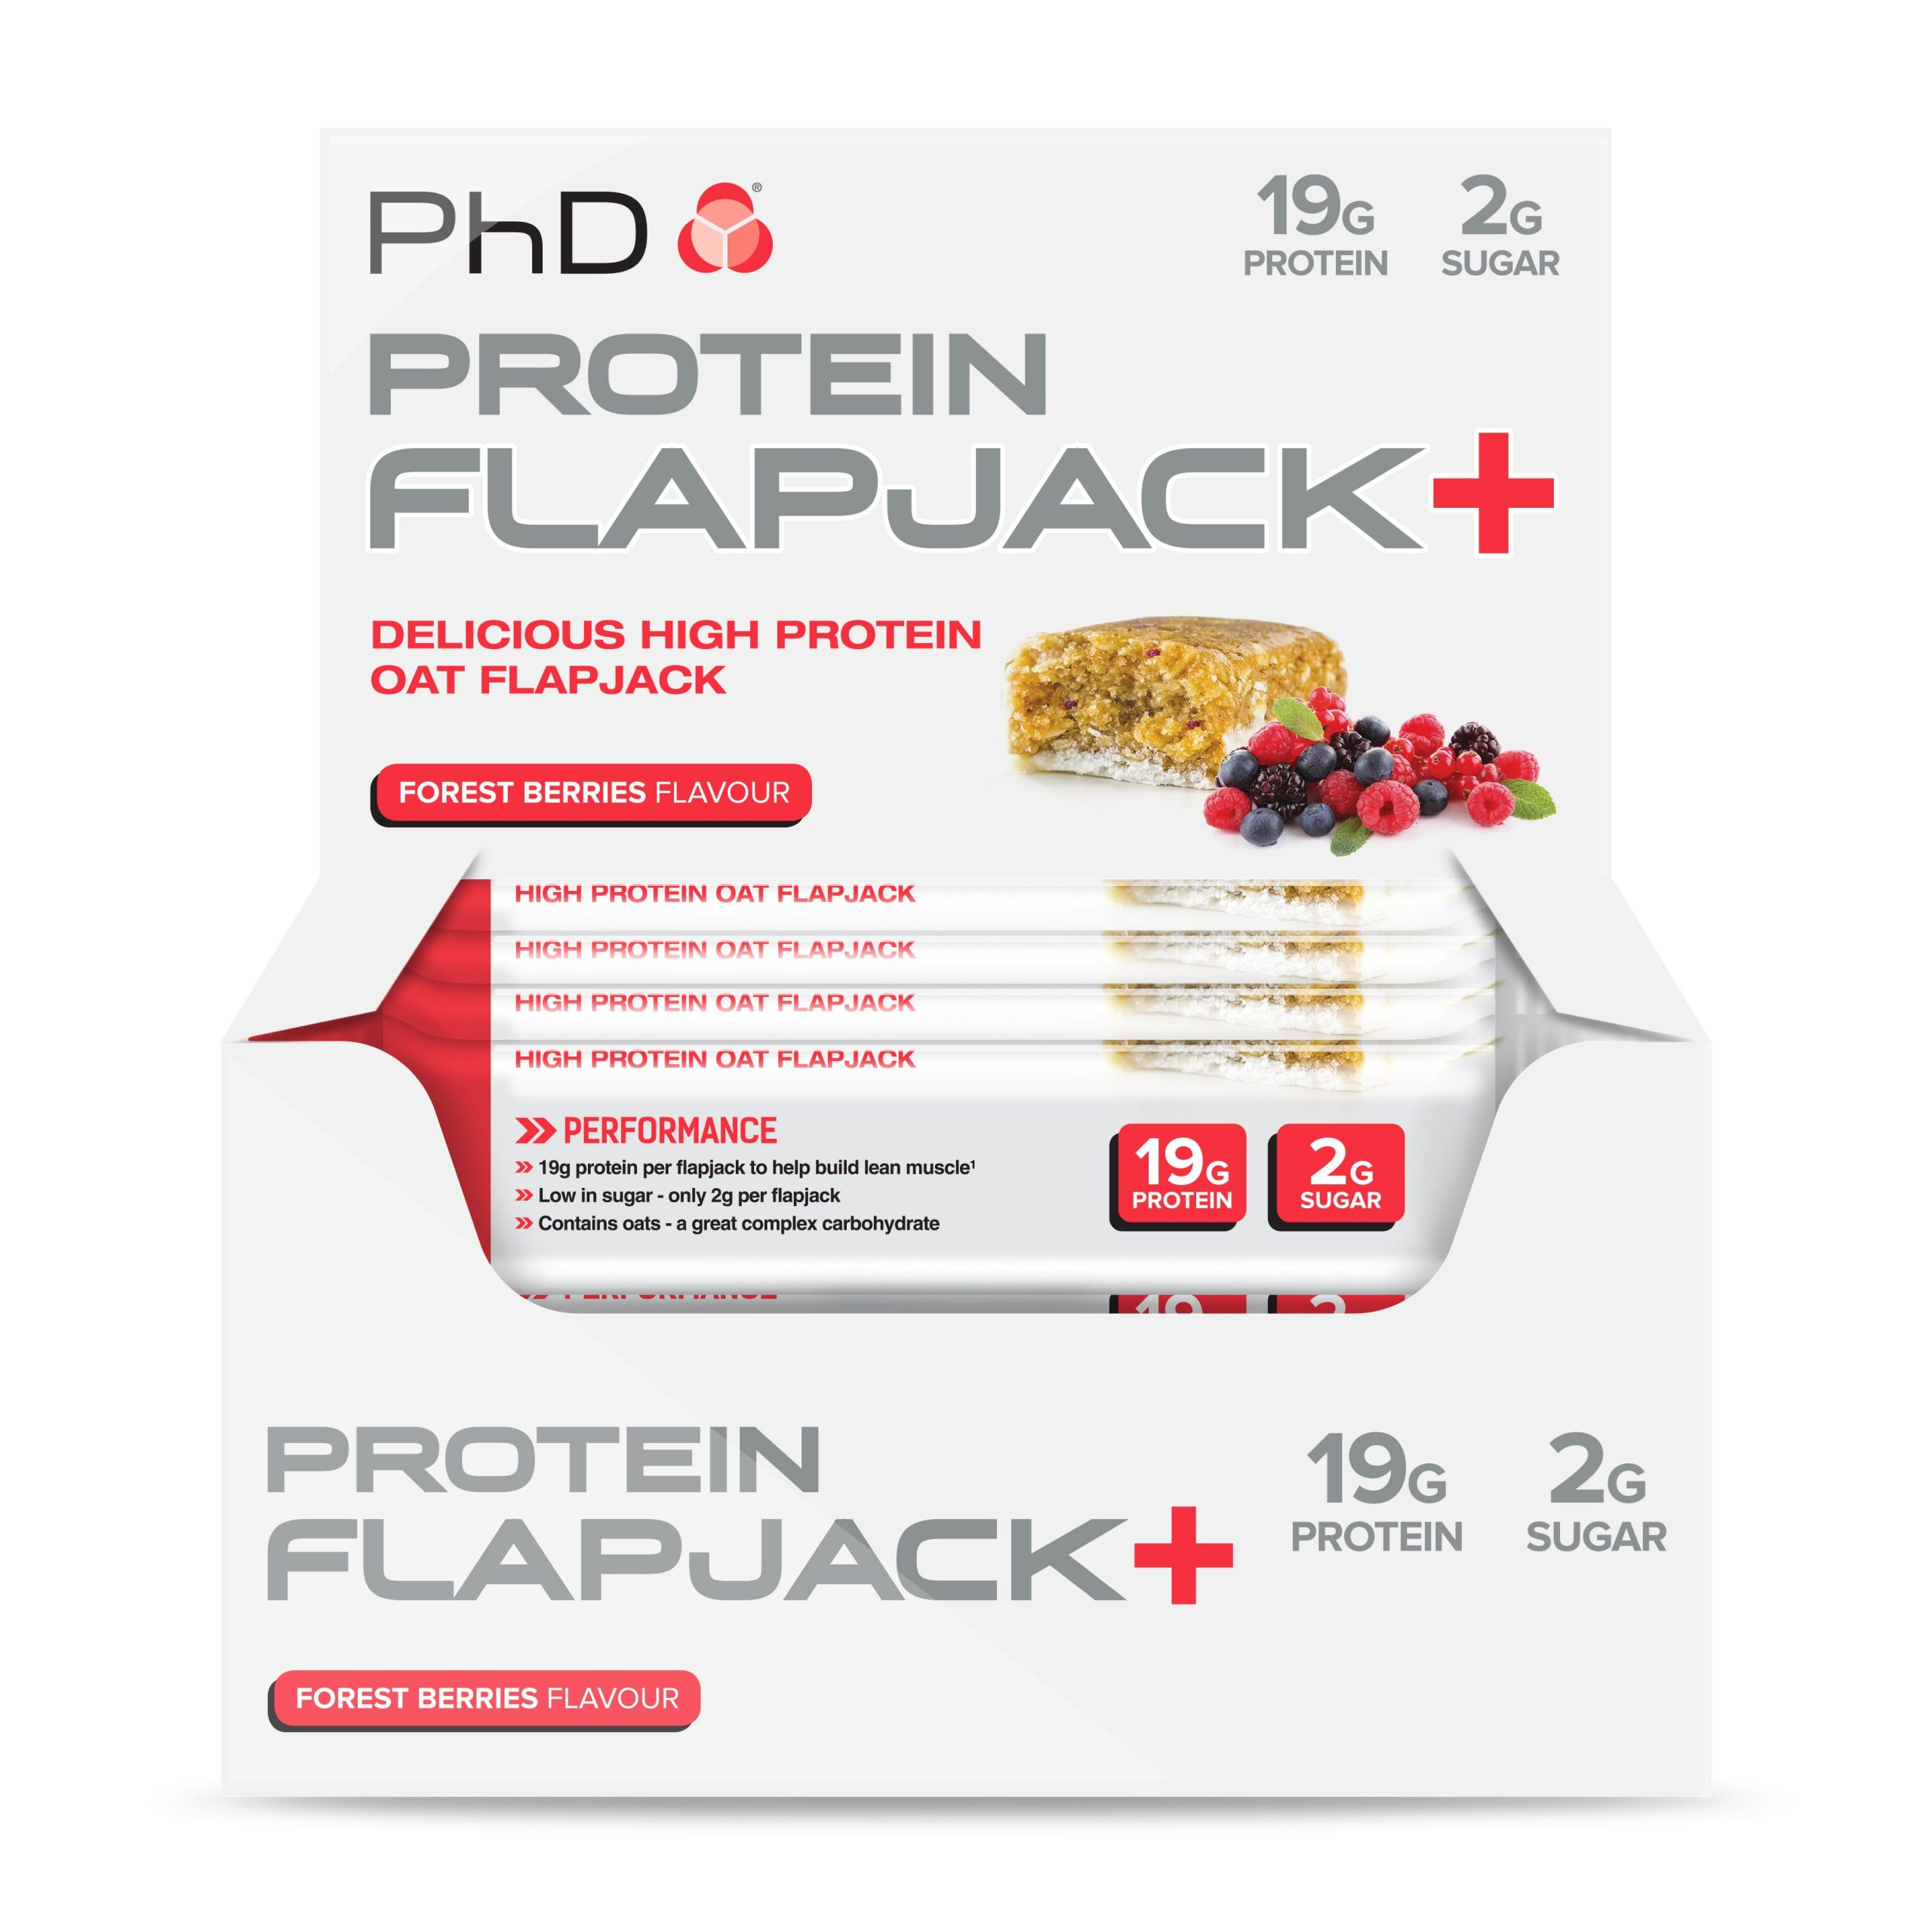 PHD Protein Flapjack+ – Forest Berries